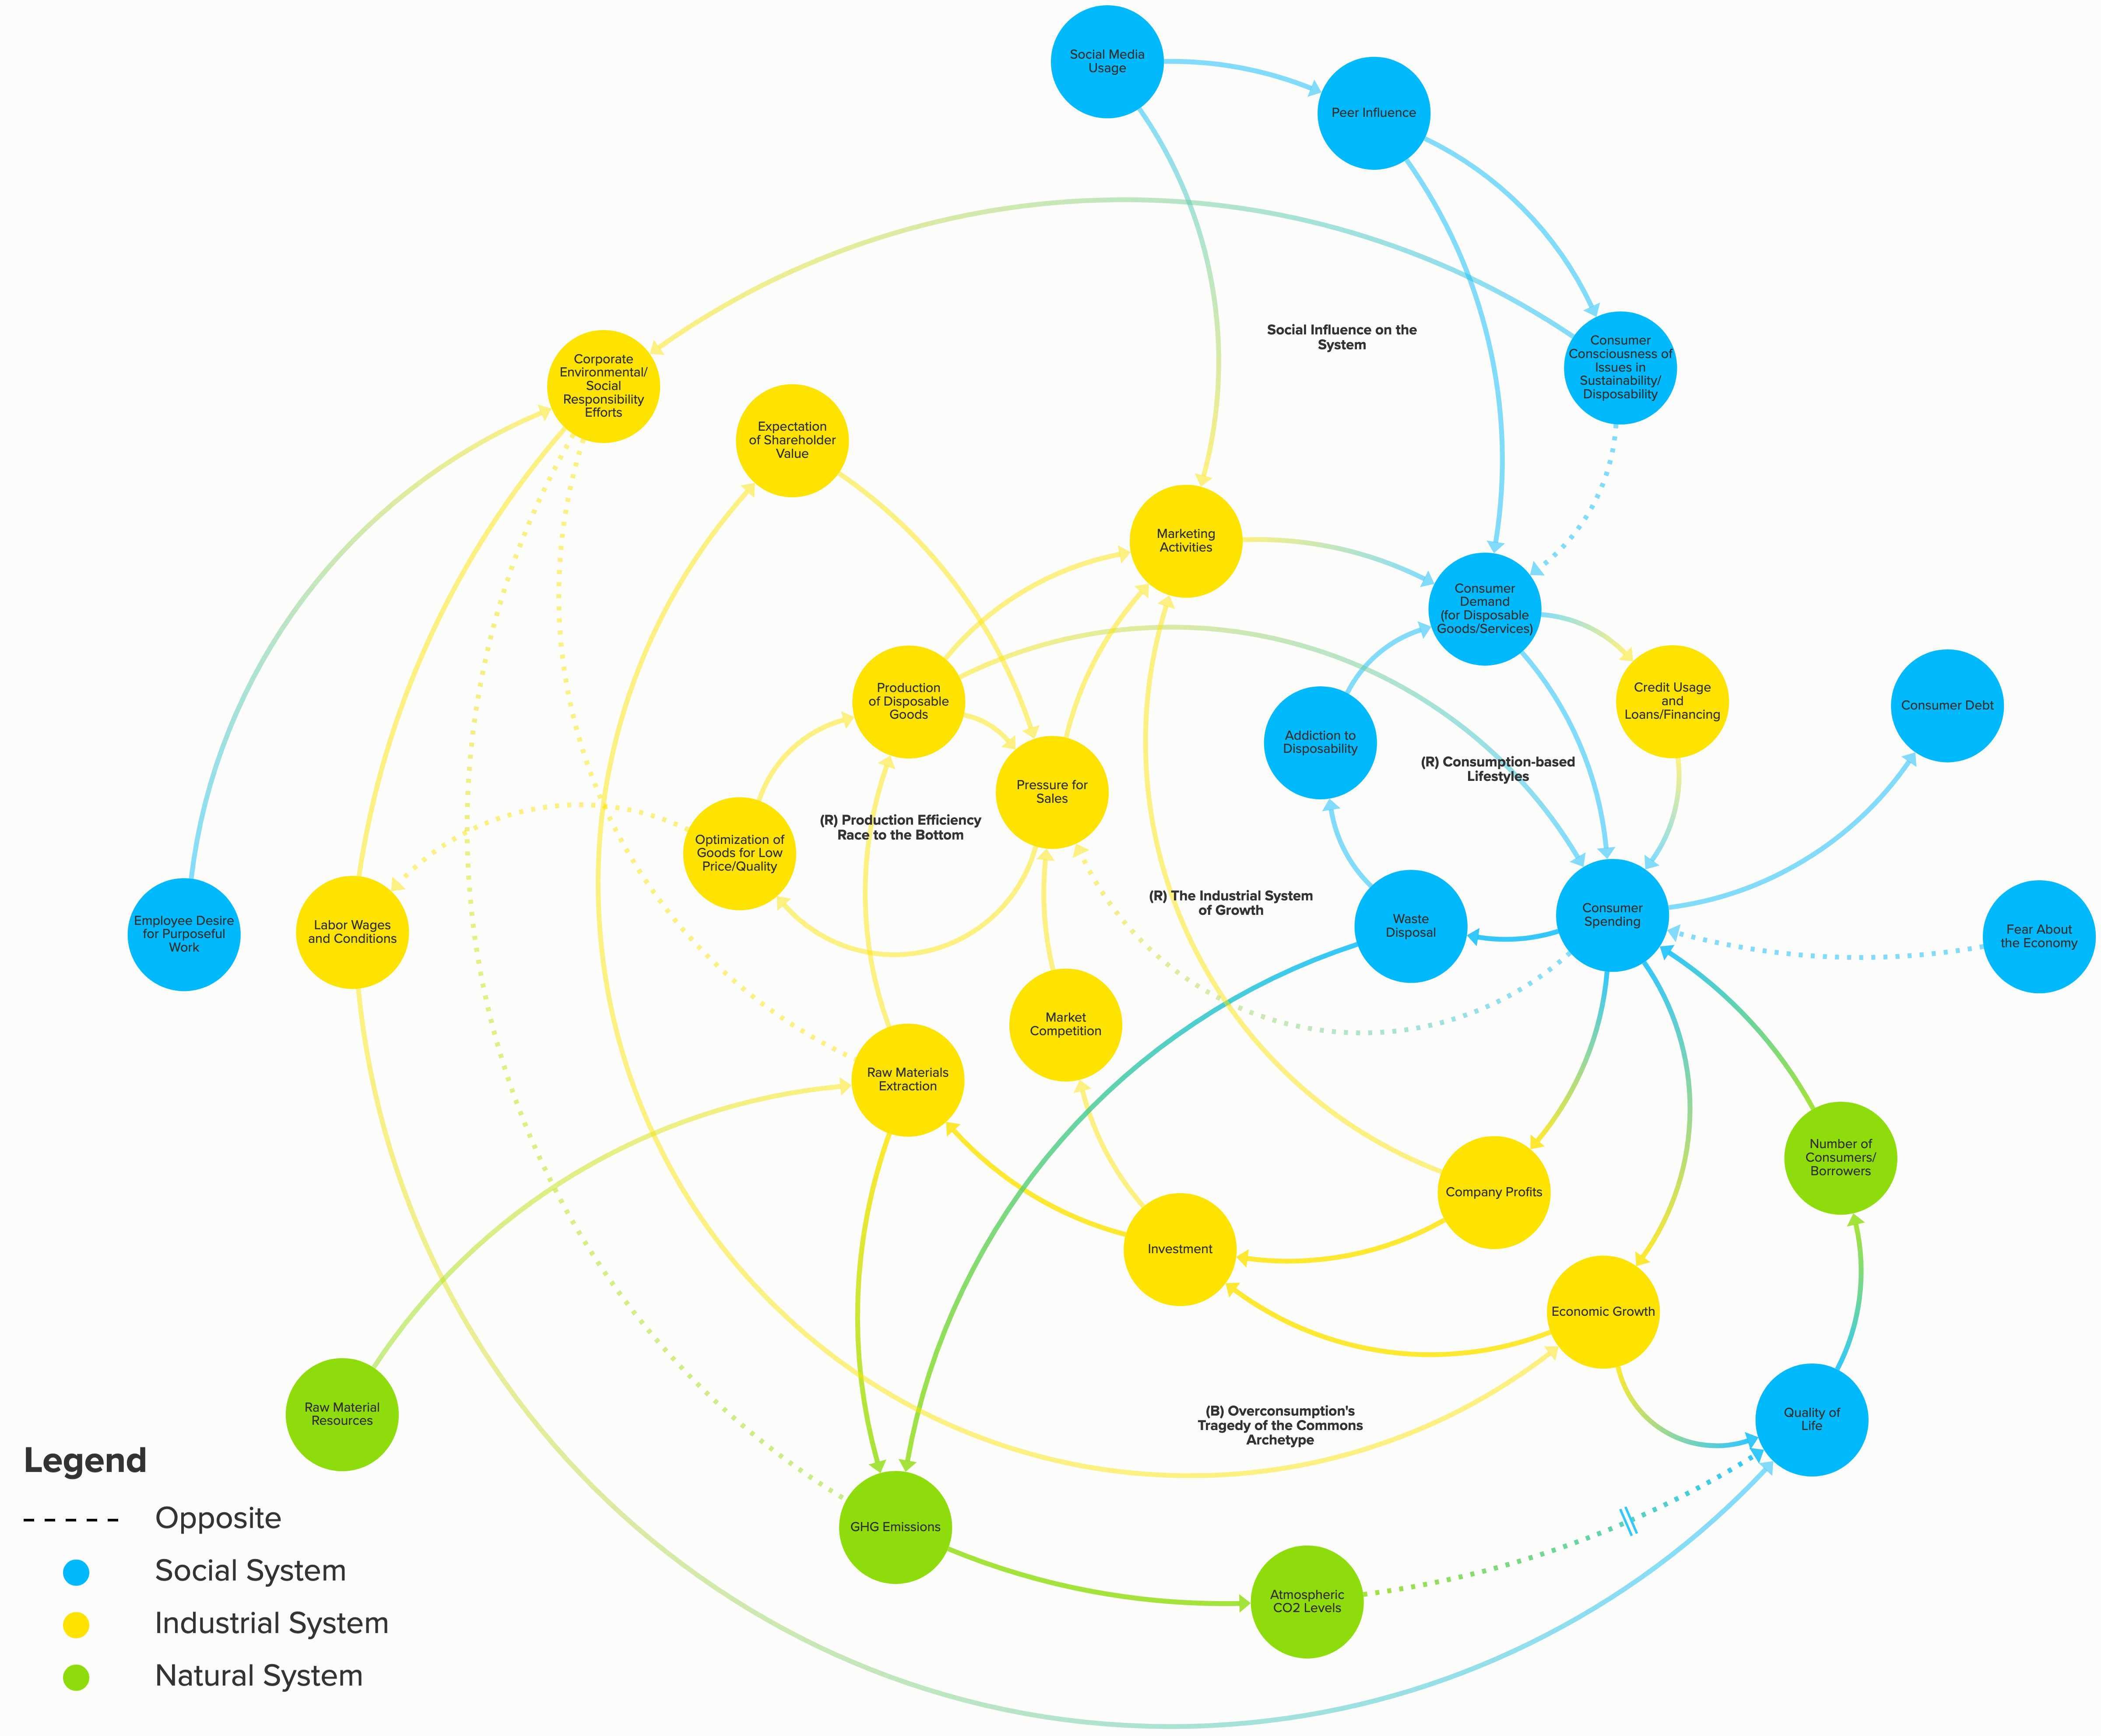 Full System Map of Marketing's Role and Influences in Capitalism